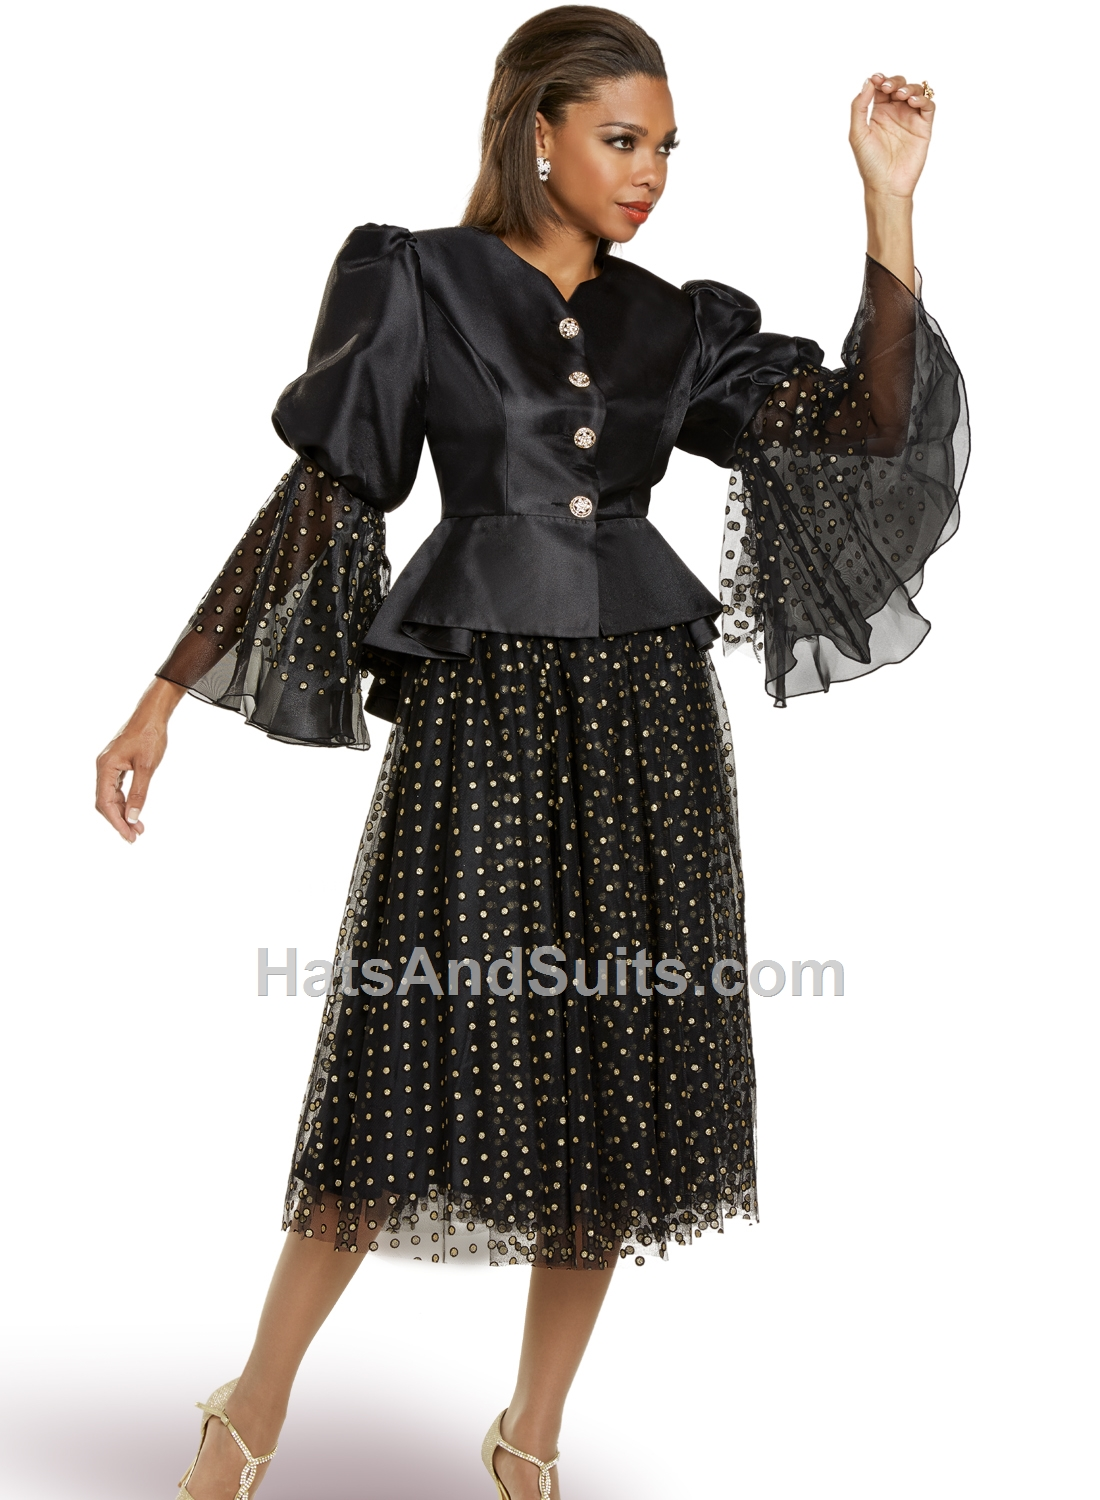 11887 Donna Vinci 2 Pc. Jacket & Skirt Set. FL20